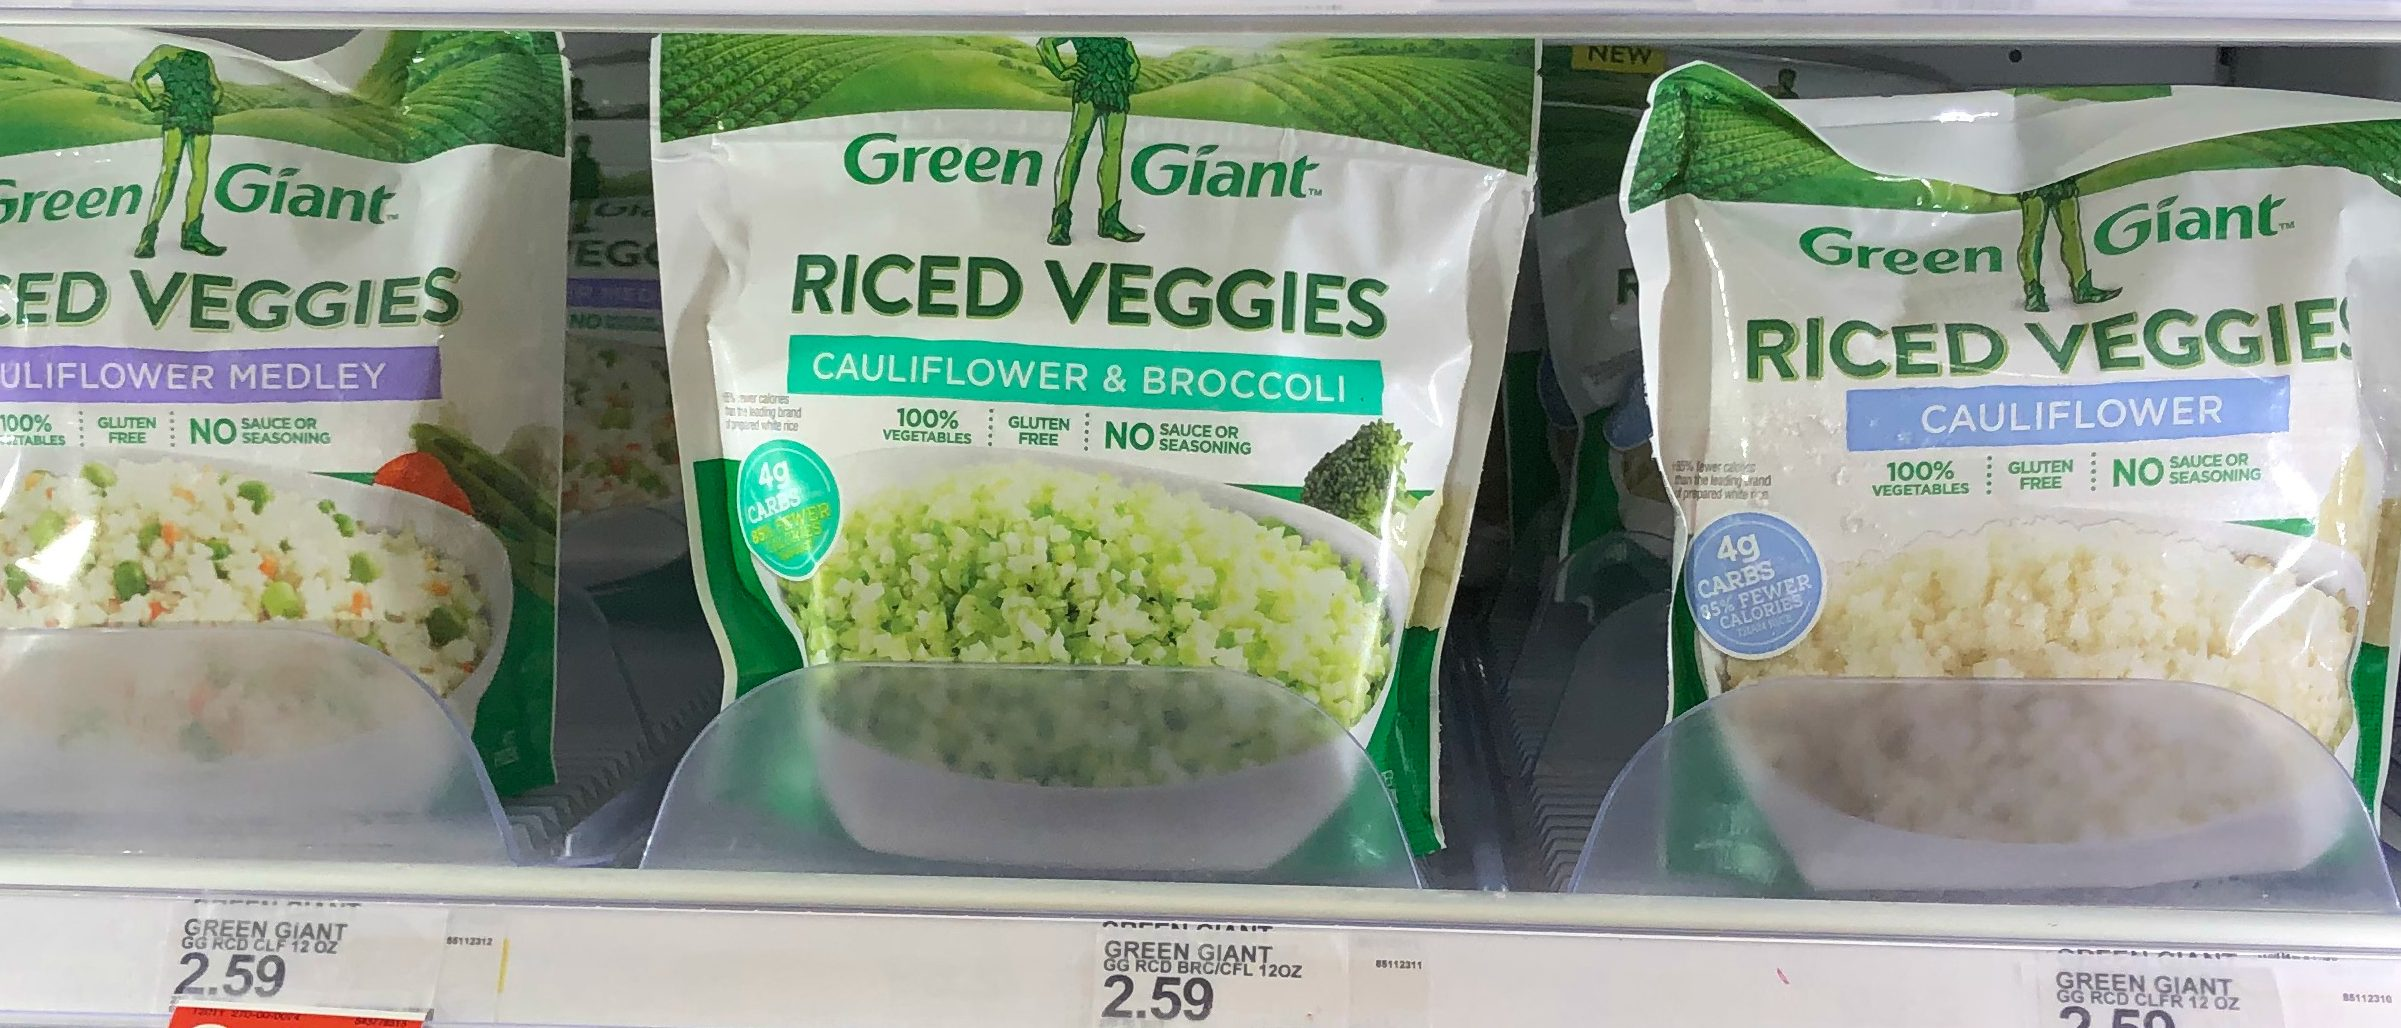 green giant riced veggies are available in the freezer section